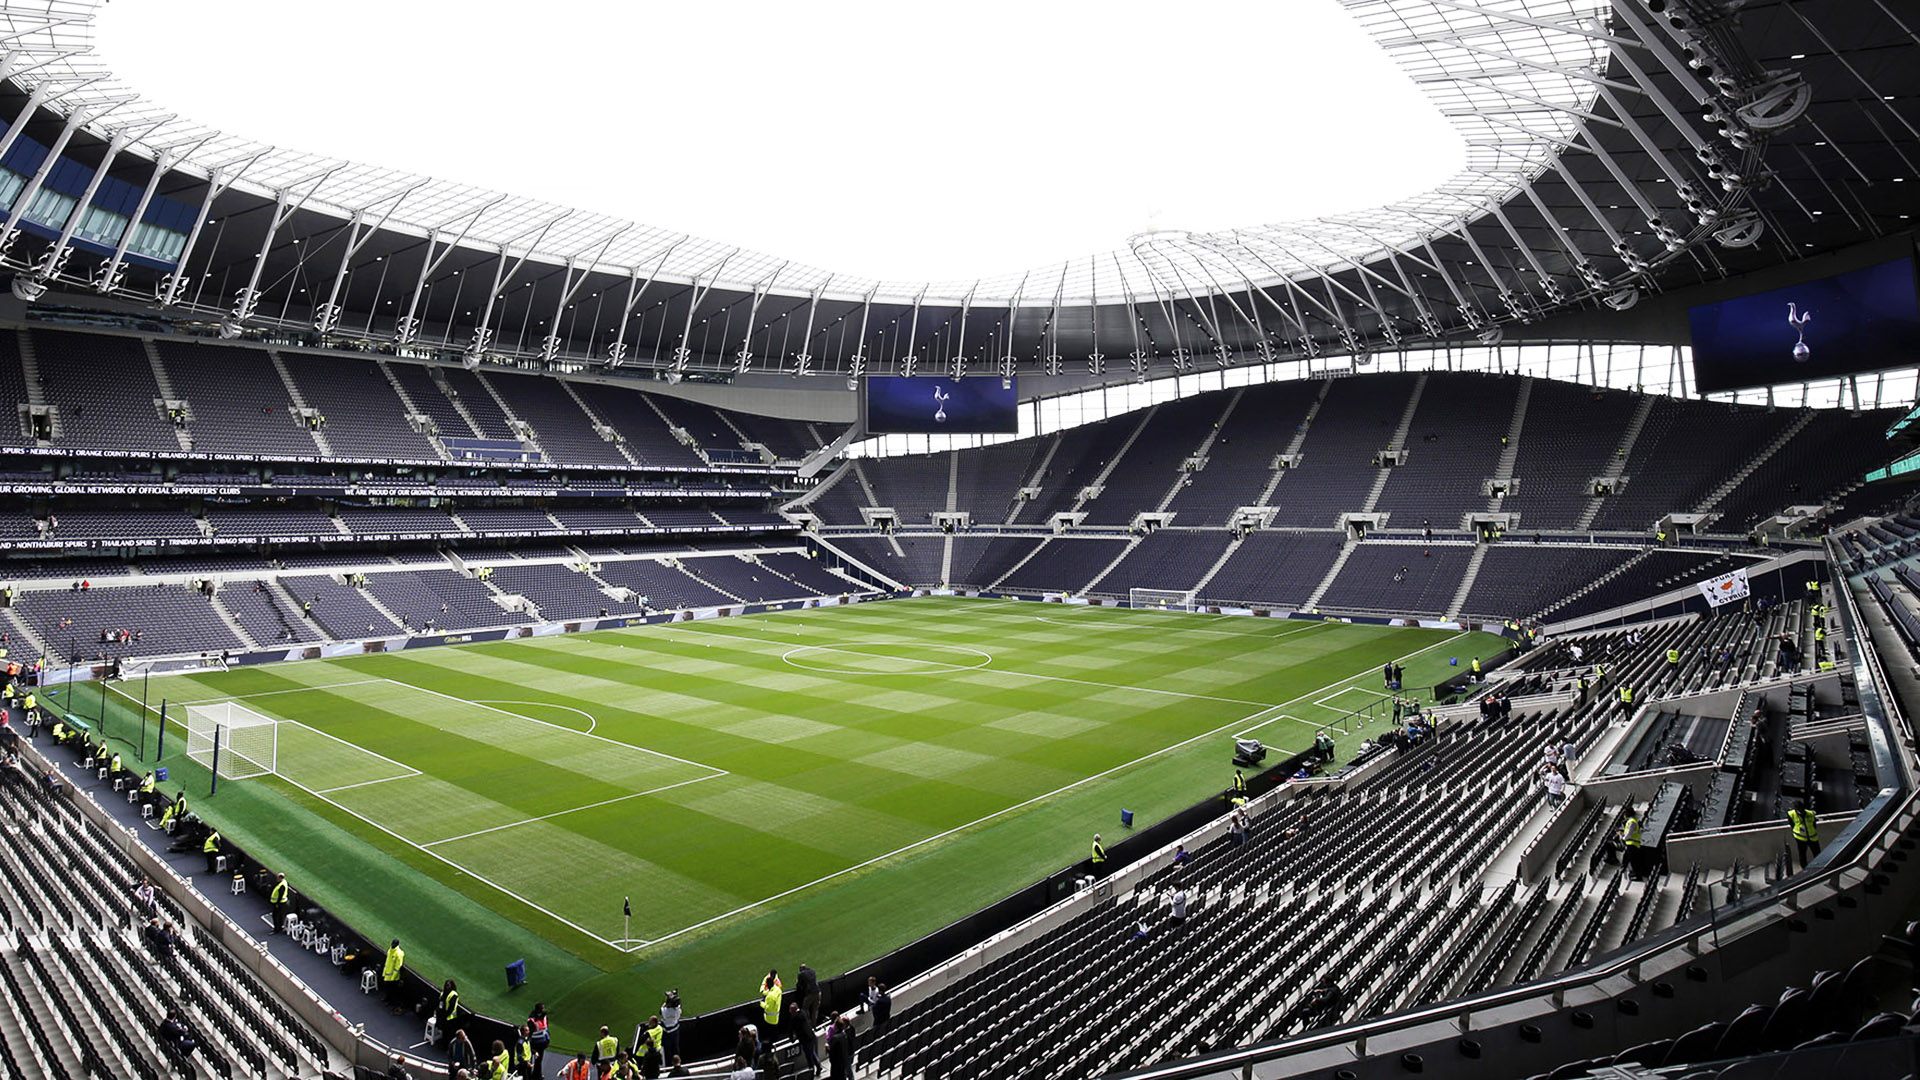 Tottenham Hotspur Stadium. Virtual background to use on Zoom, Microsoft Teams, Skype, Google Meet, WebEx or any other compatible app.